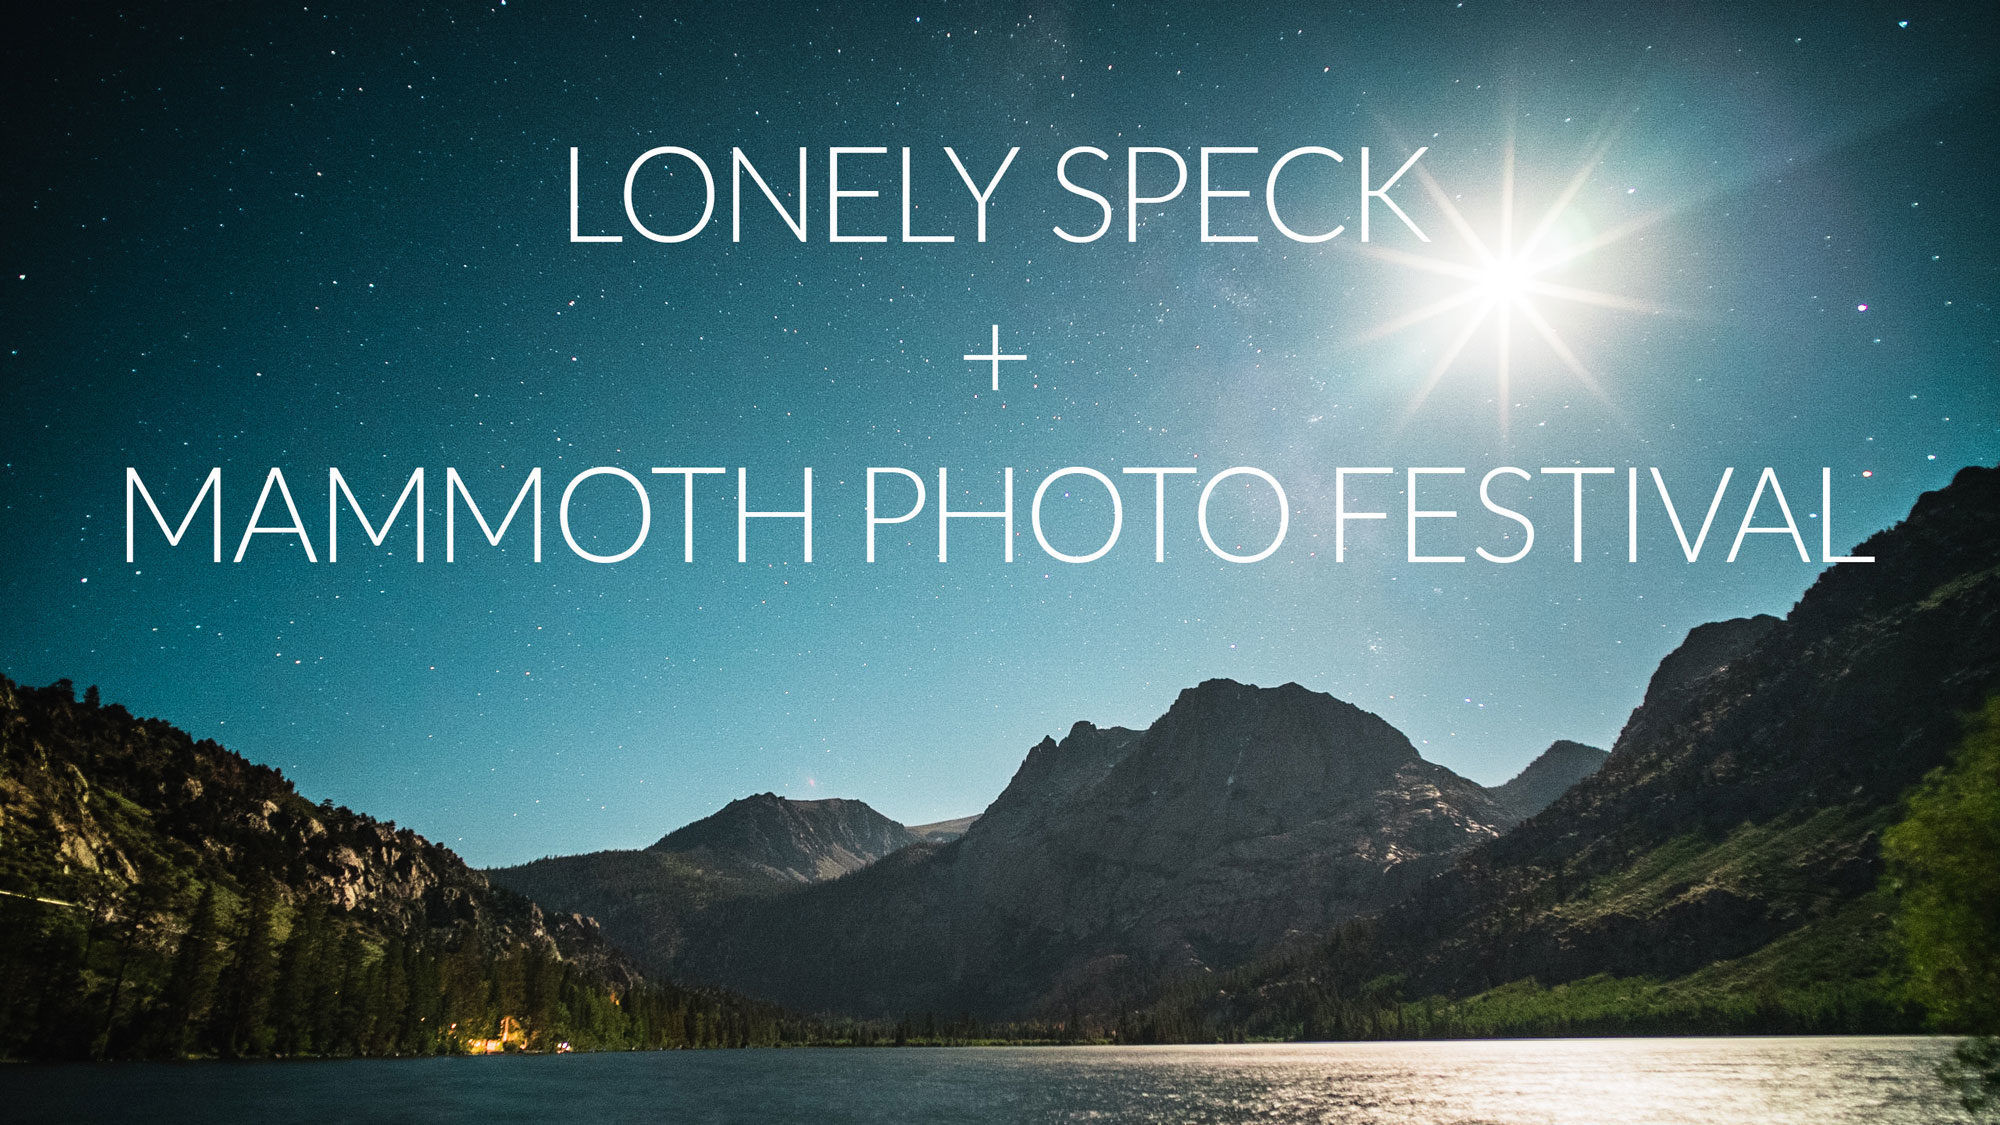 Lonely Speck + Mammoth Photo Festival